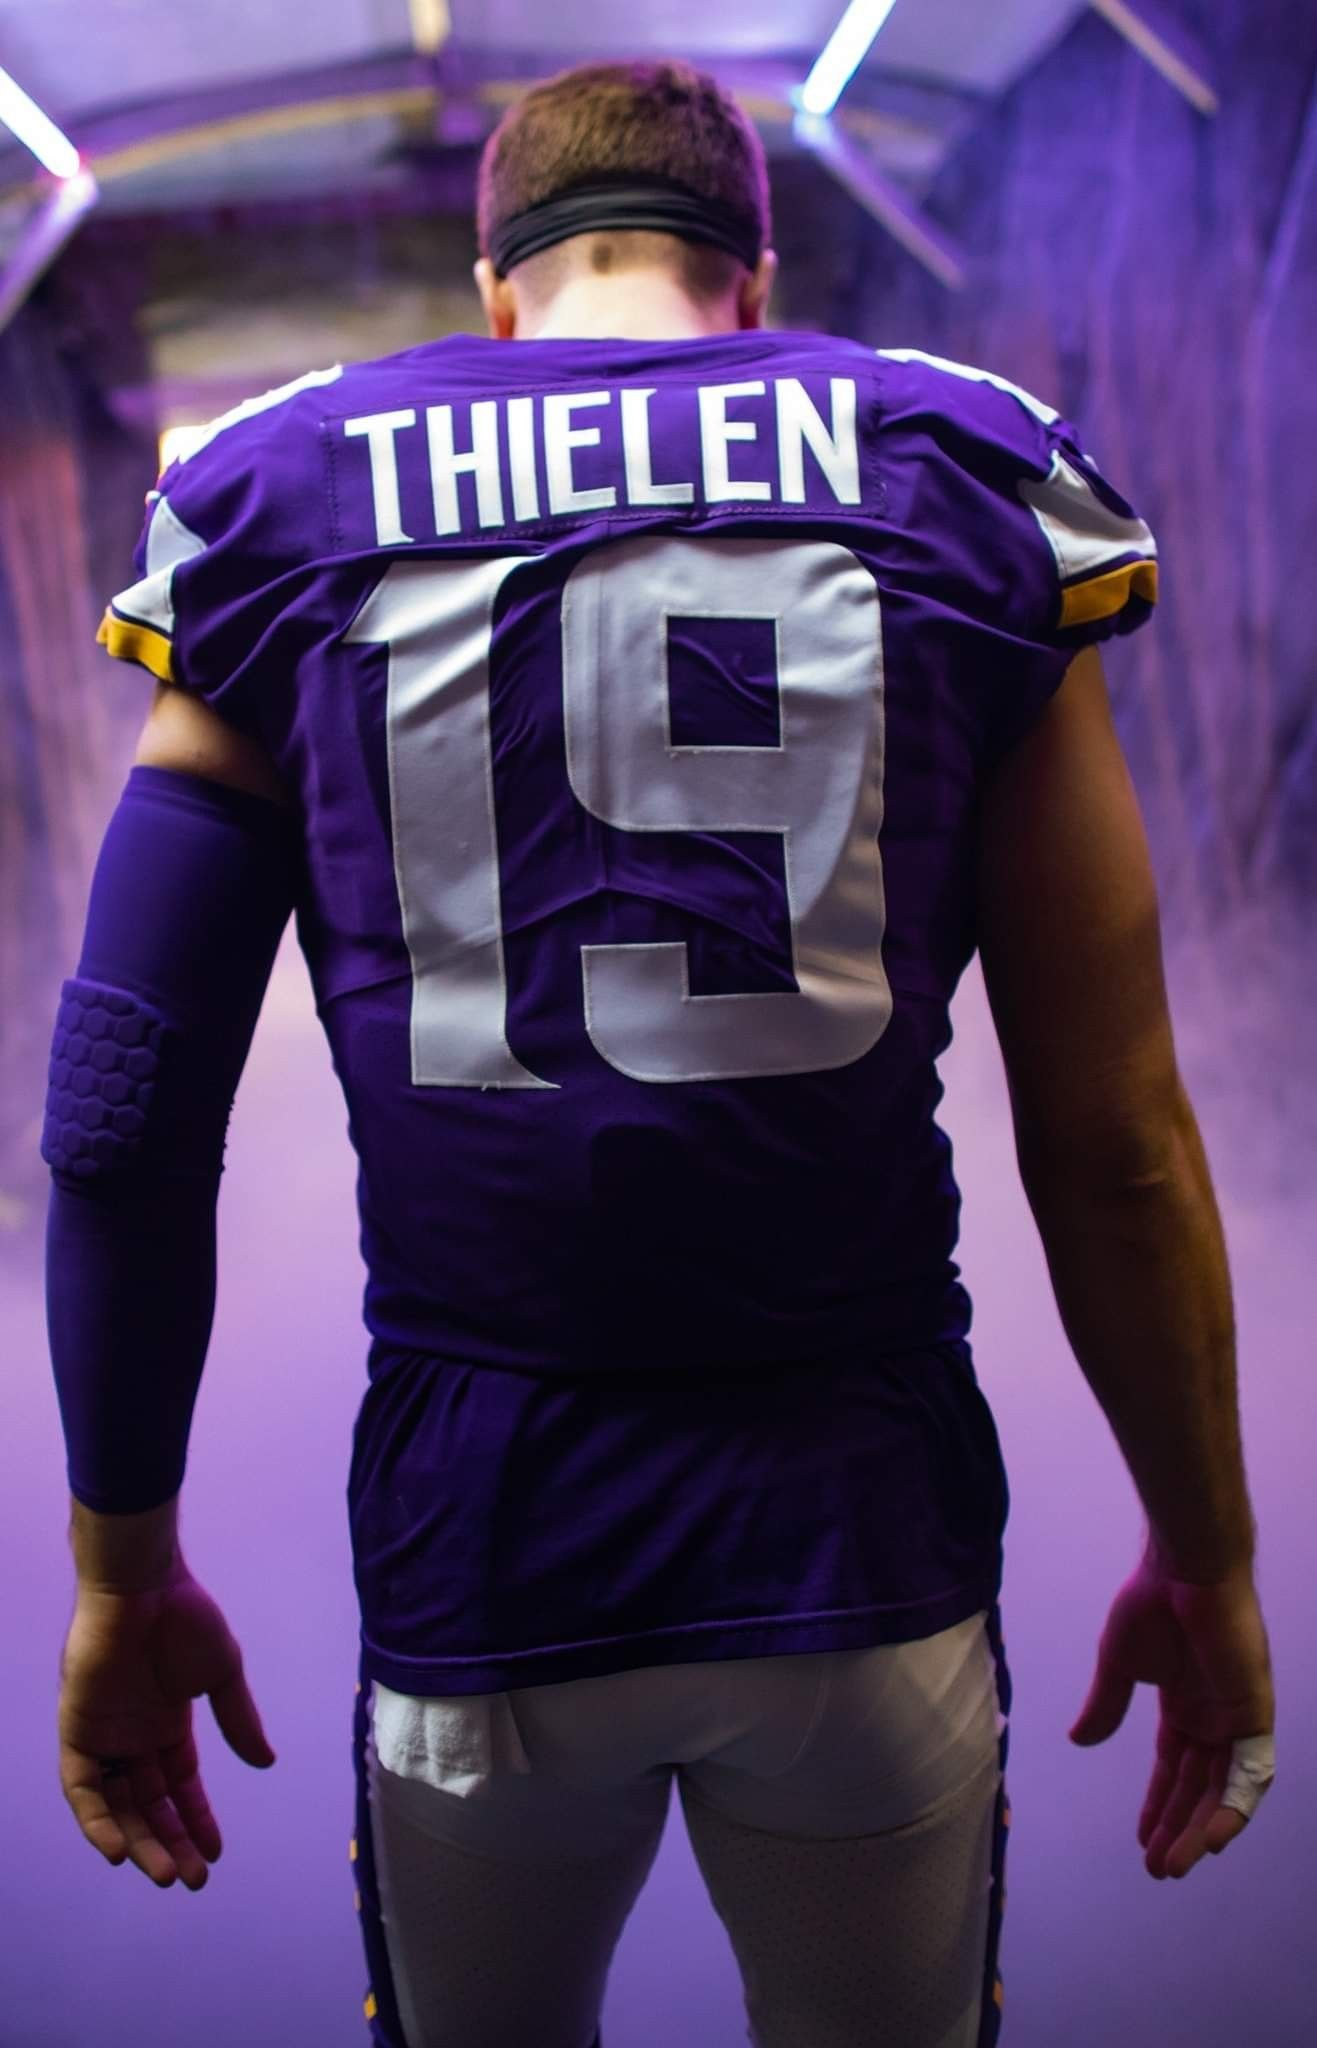 Pin by Bob Singer on Minnesota Vikings (With images